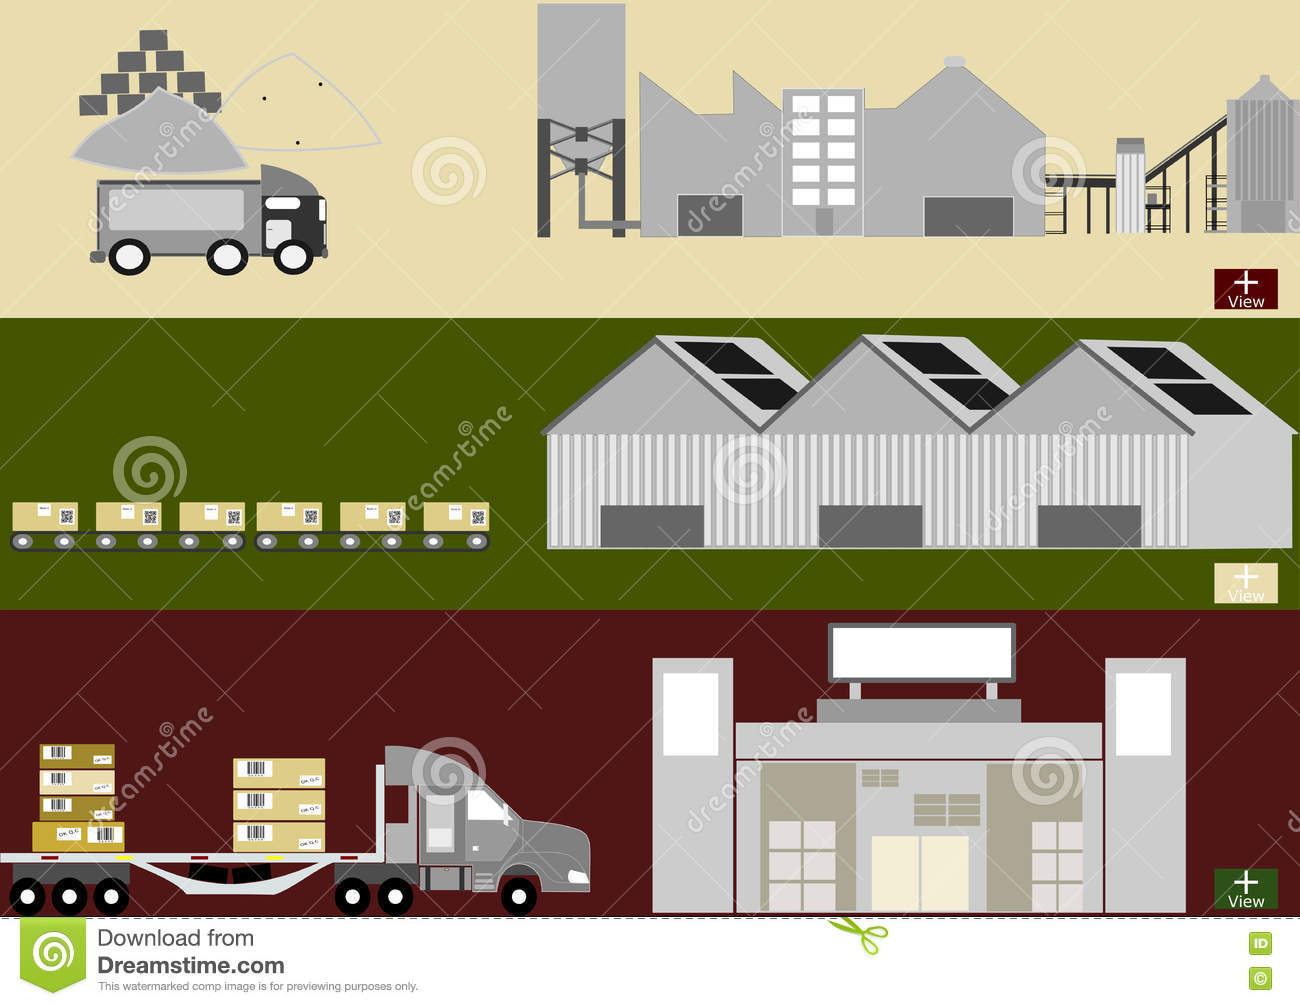 supply chain management and raw materials This definition explains the meaning of the term supply chain management (scm), which optimizes activities that take a raw material to a final product.